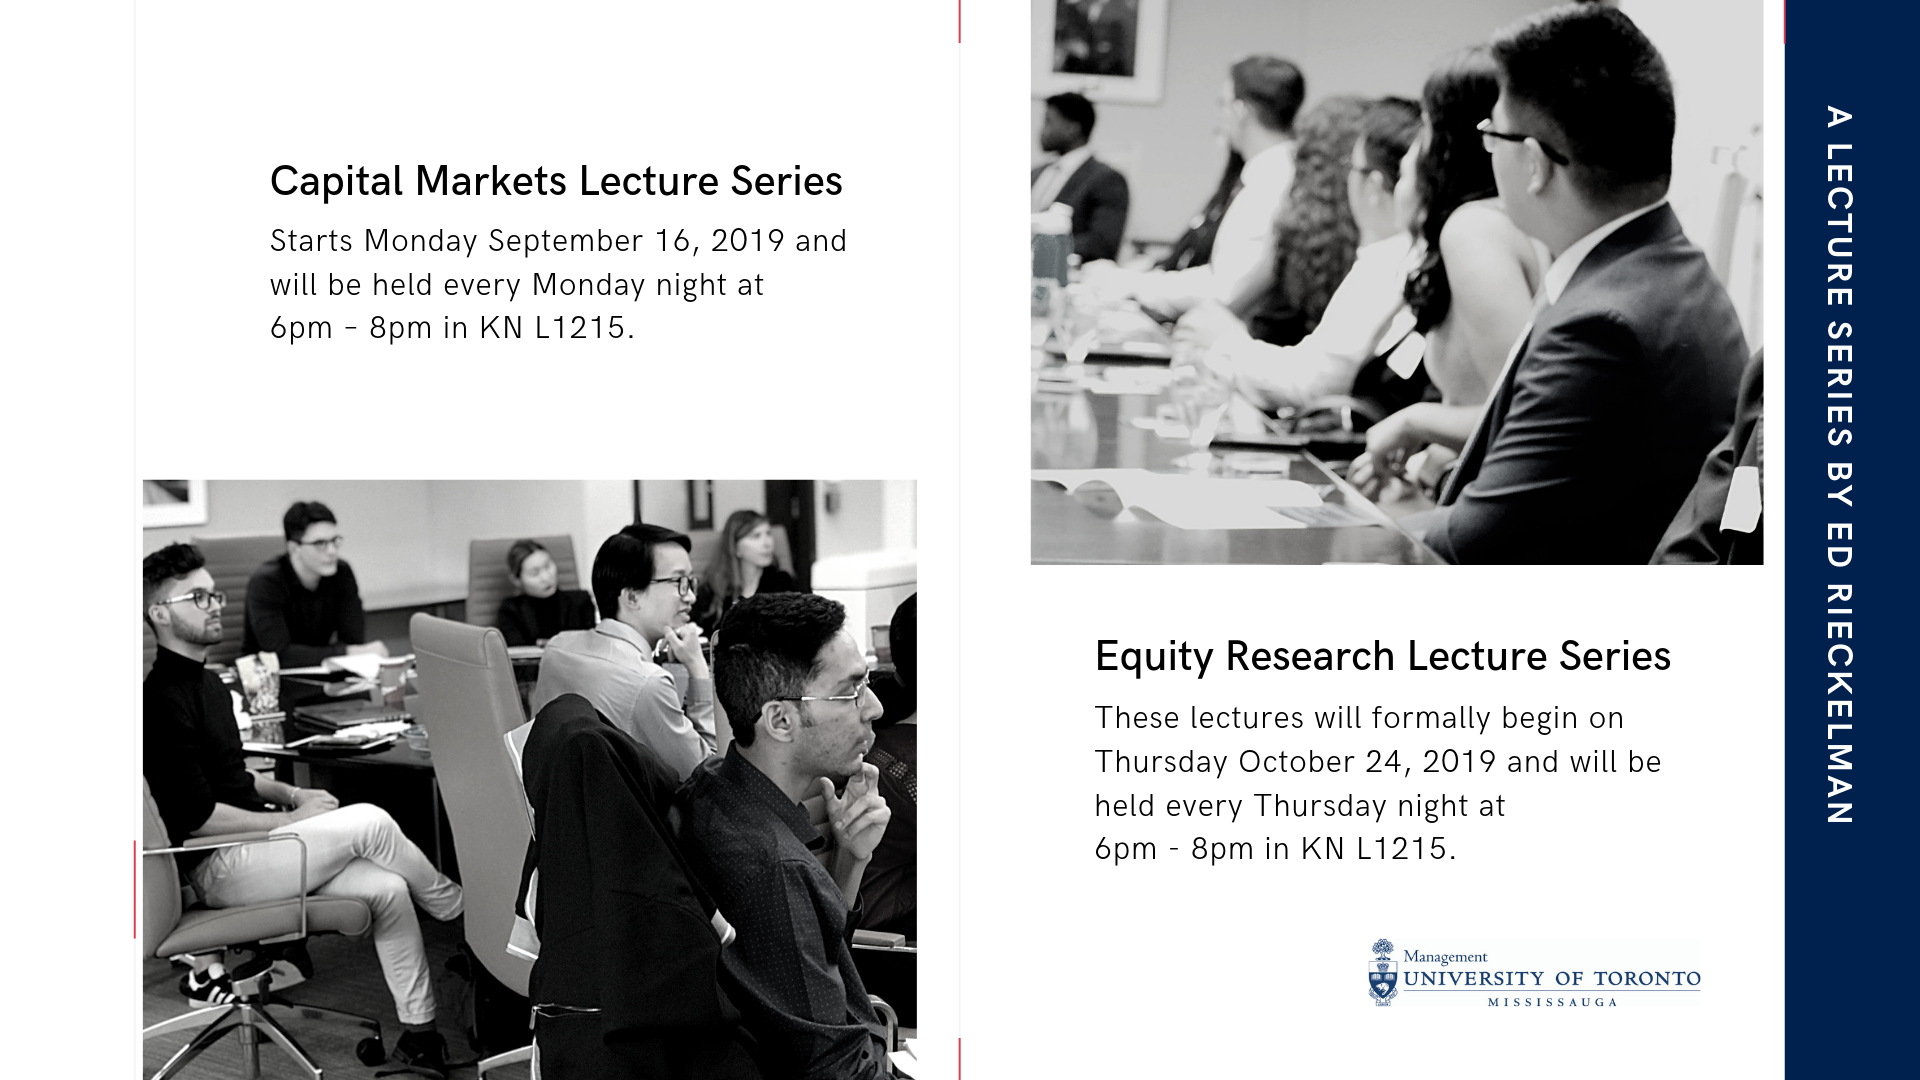 Capital markets and equity research lecture series